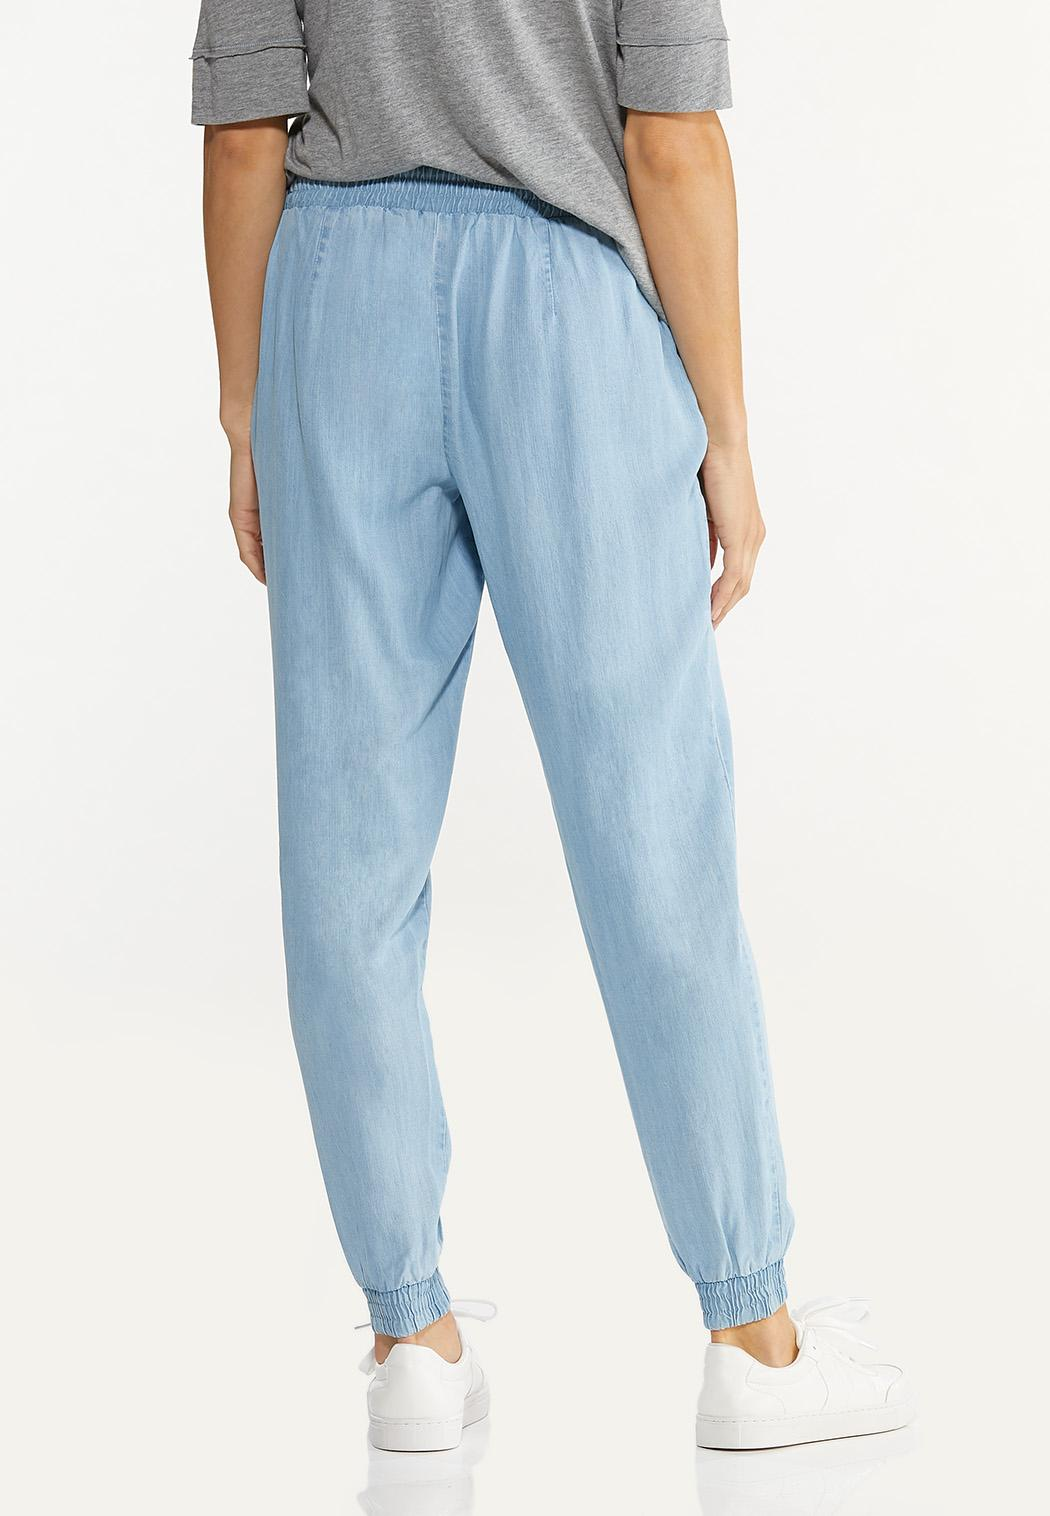 Petite Smocked Chambray Joggers (Item #44589853)